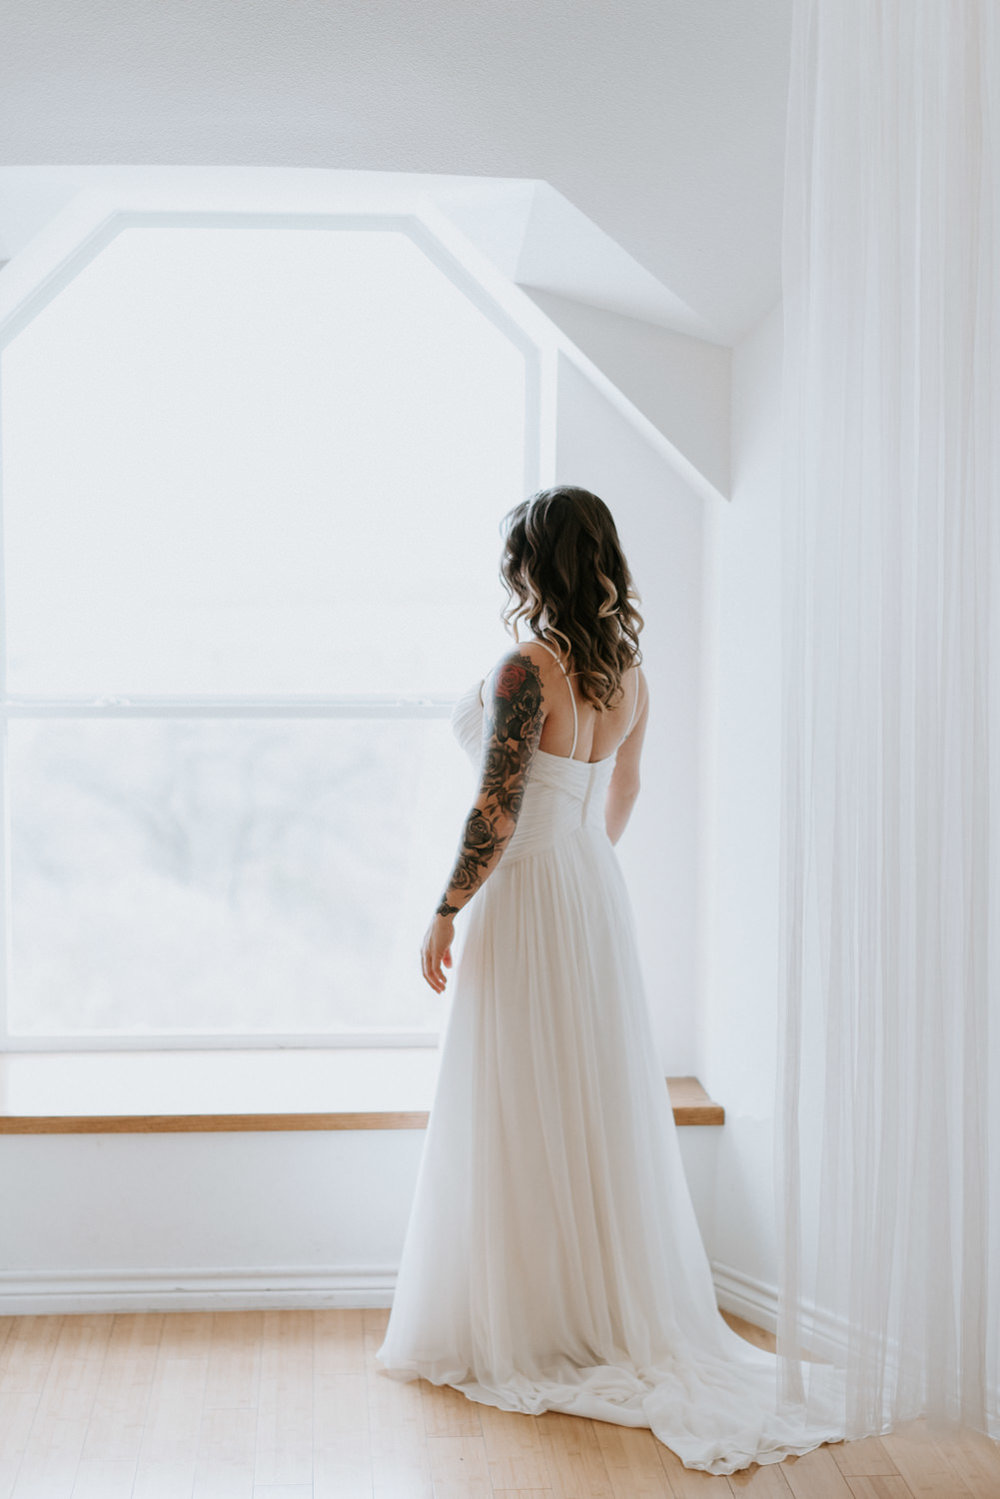 Bride with tattoos portrait by Donny Tidmore Photography